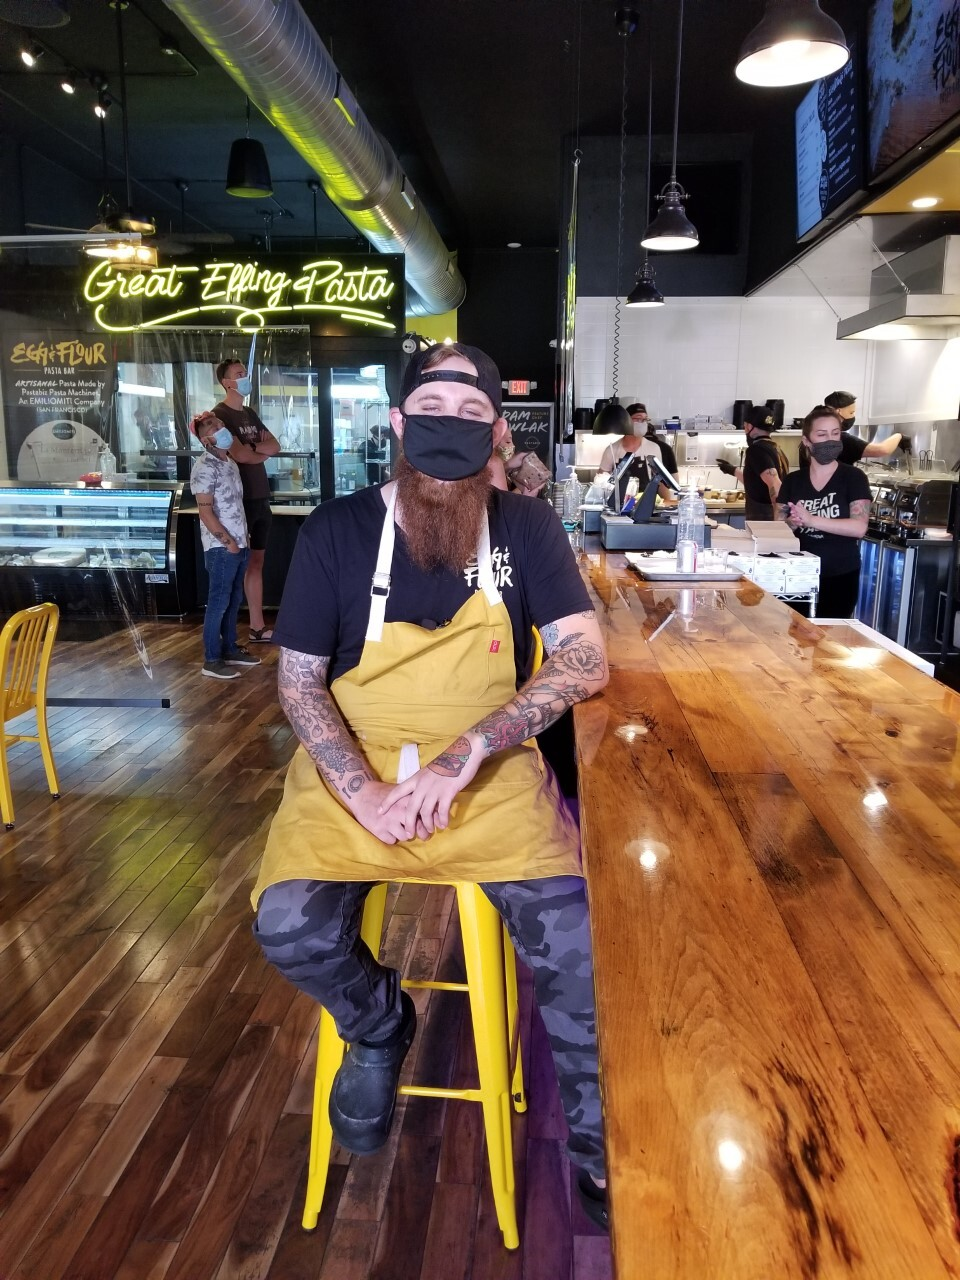 Owner Adam Pawlak said he waited so long to reopen because he wanted to do it right and follow all the rules.